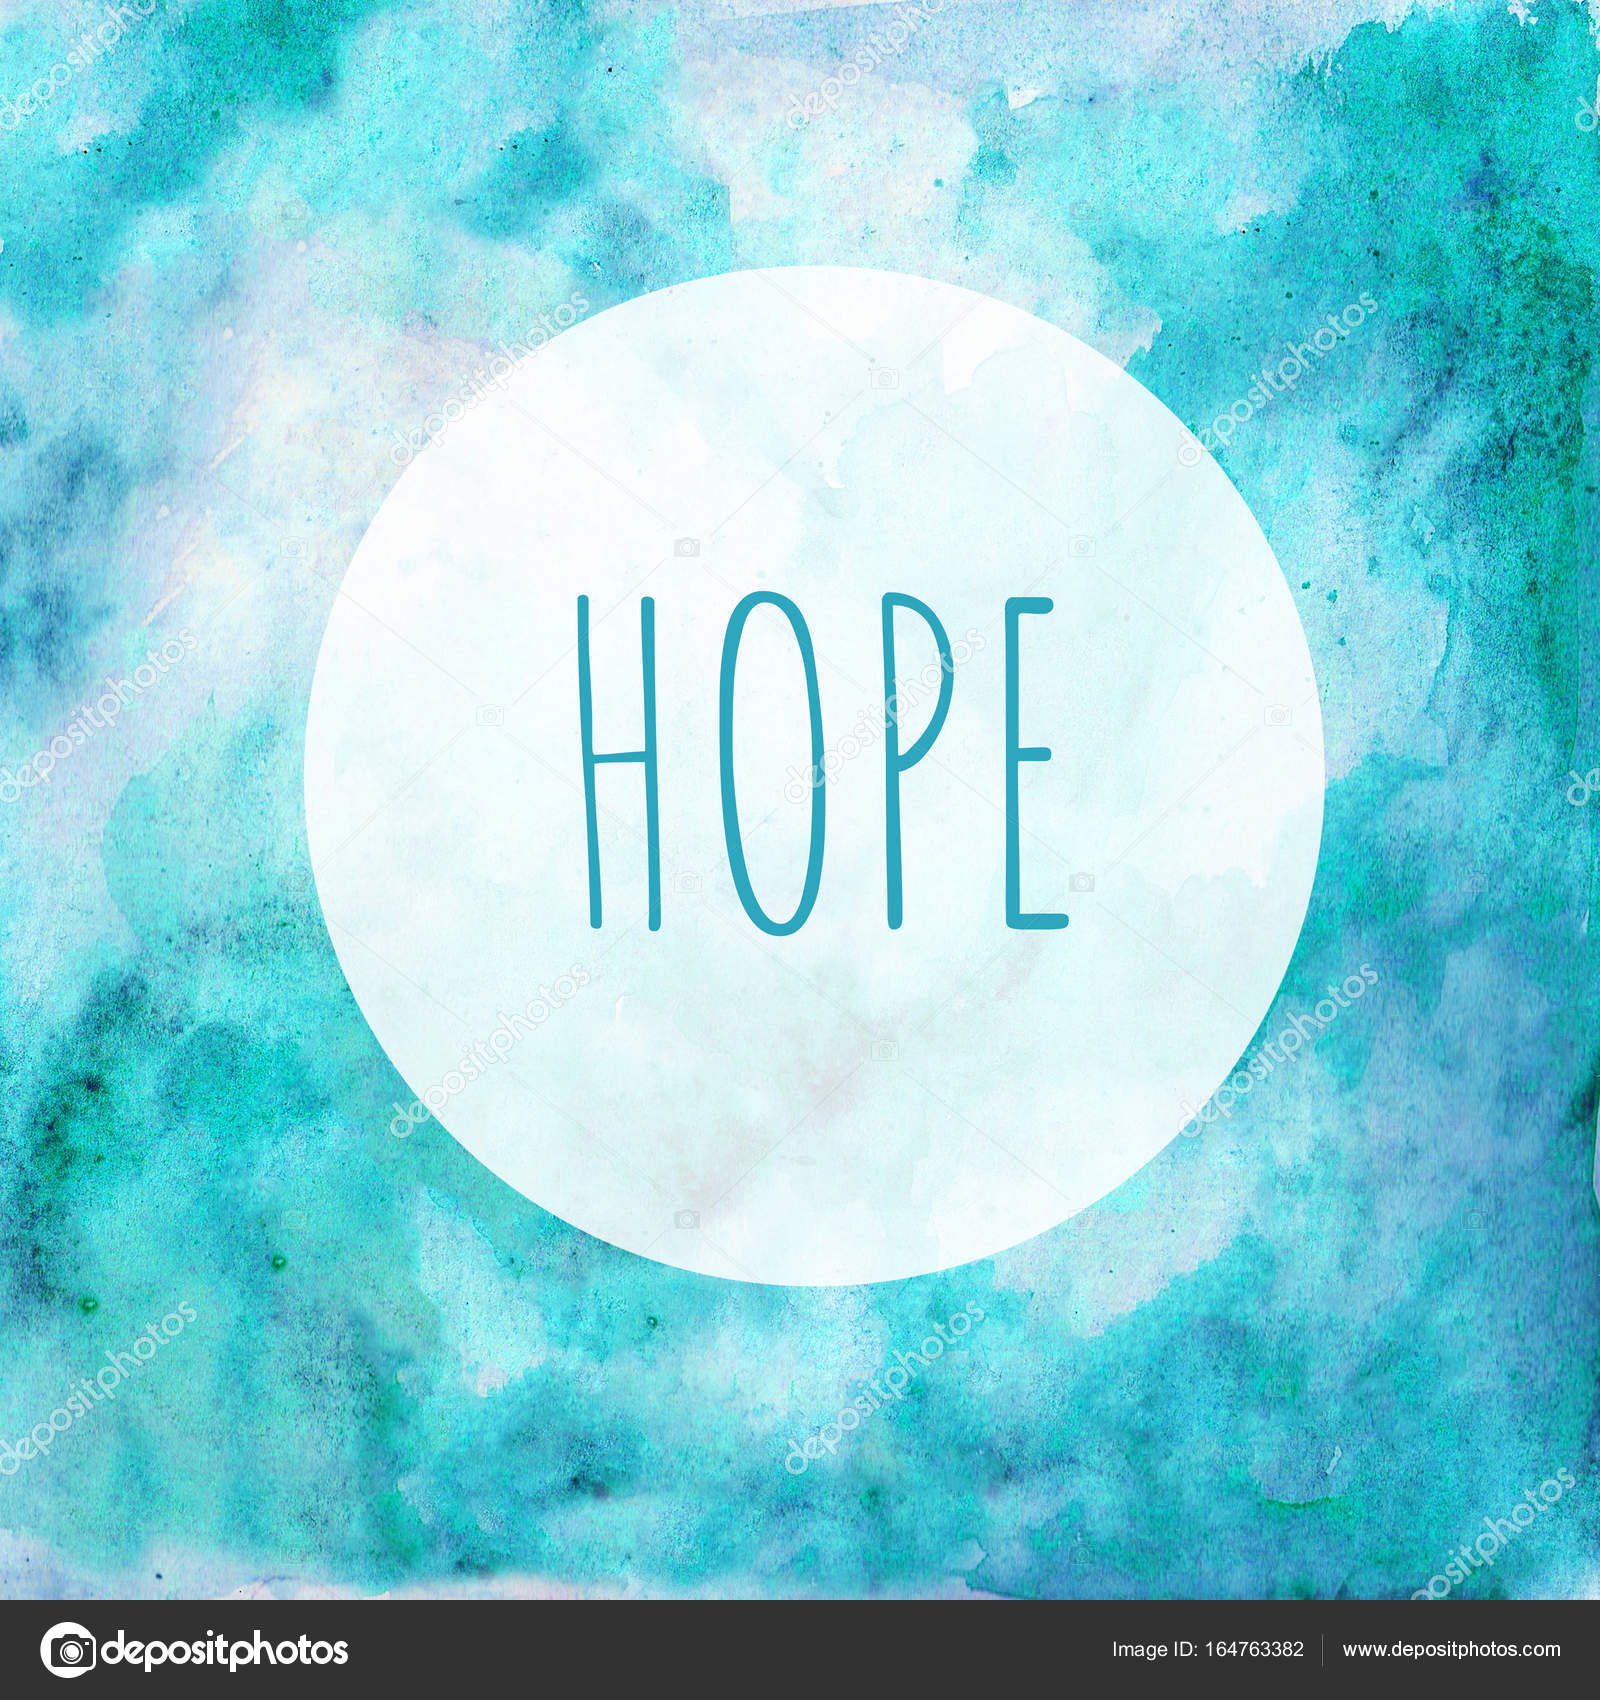 card hope in the round frame blue green watercolor background